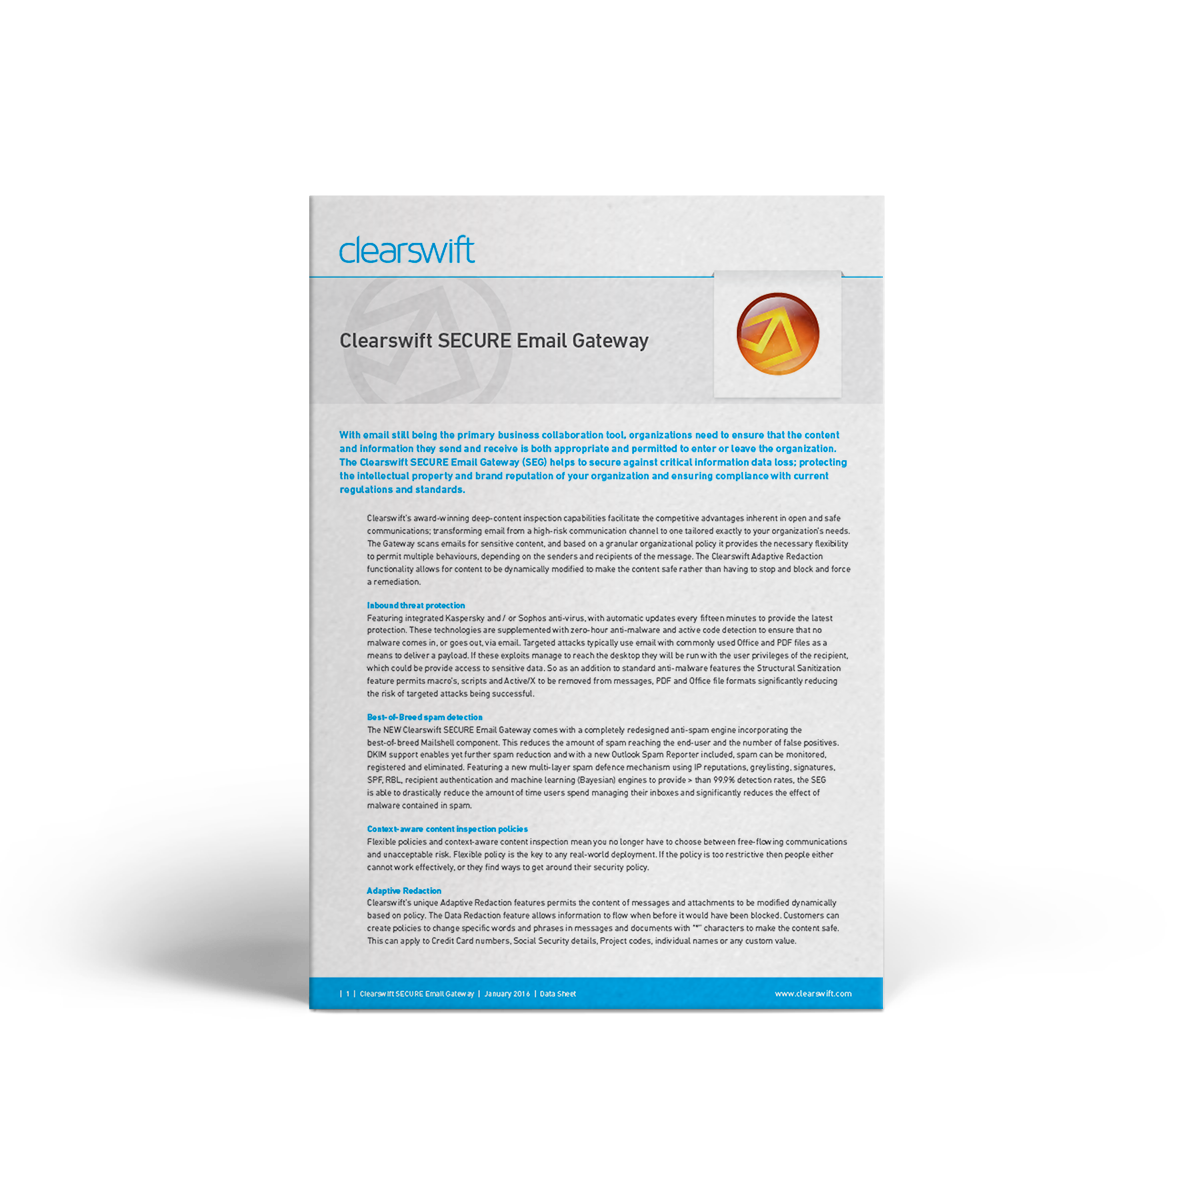 Clearswift SEG datasheet